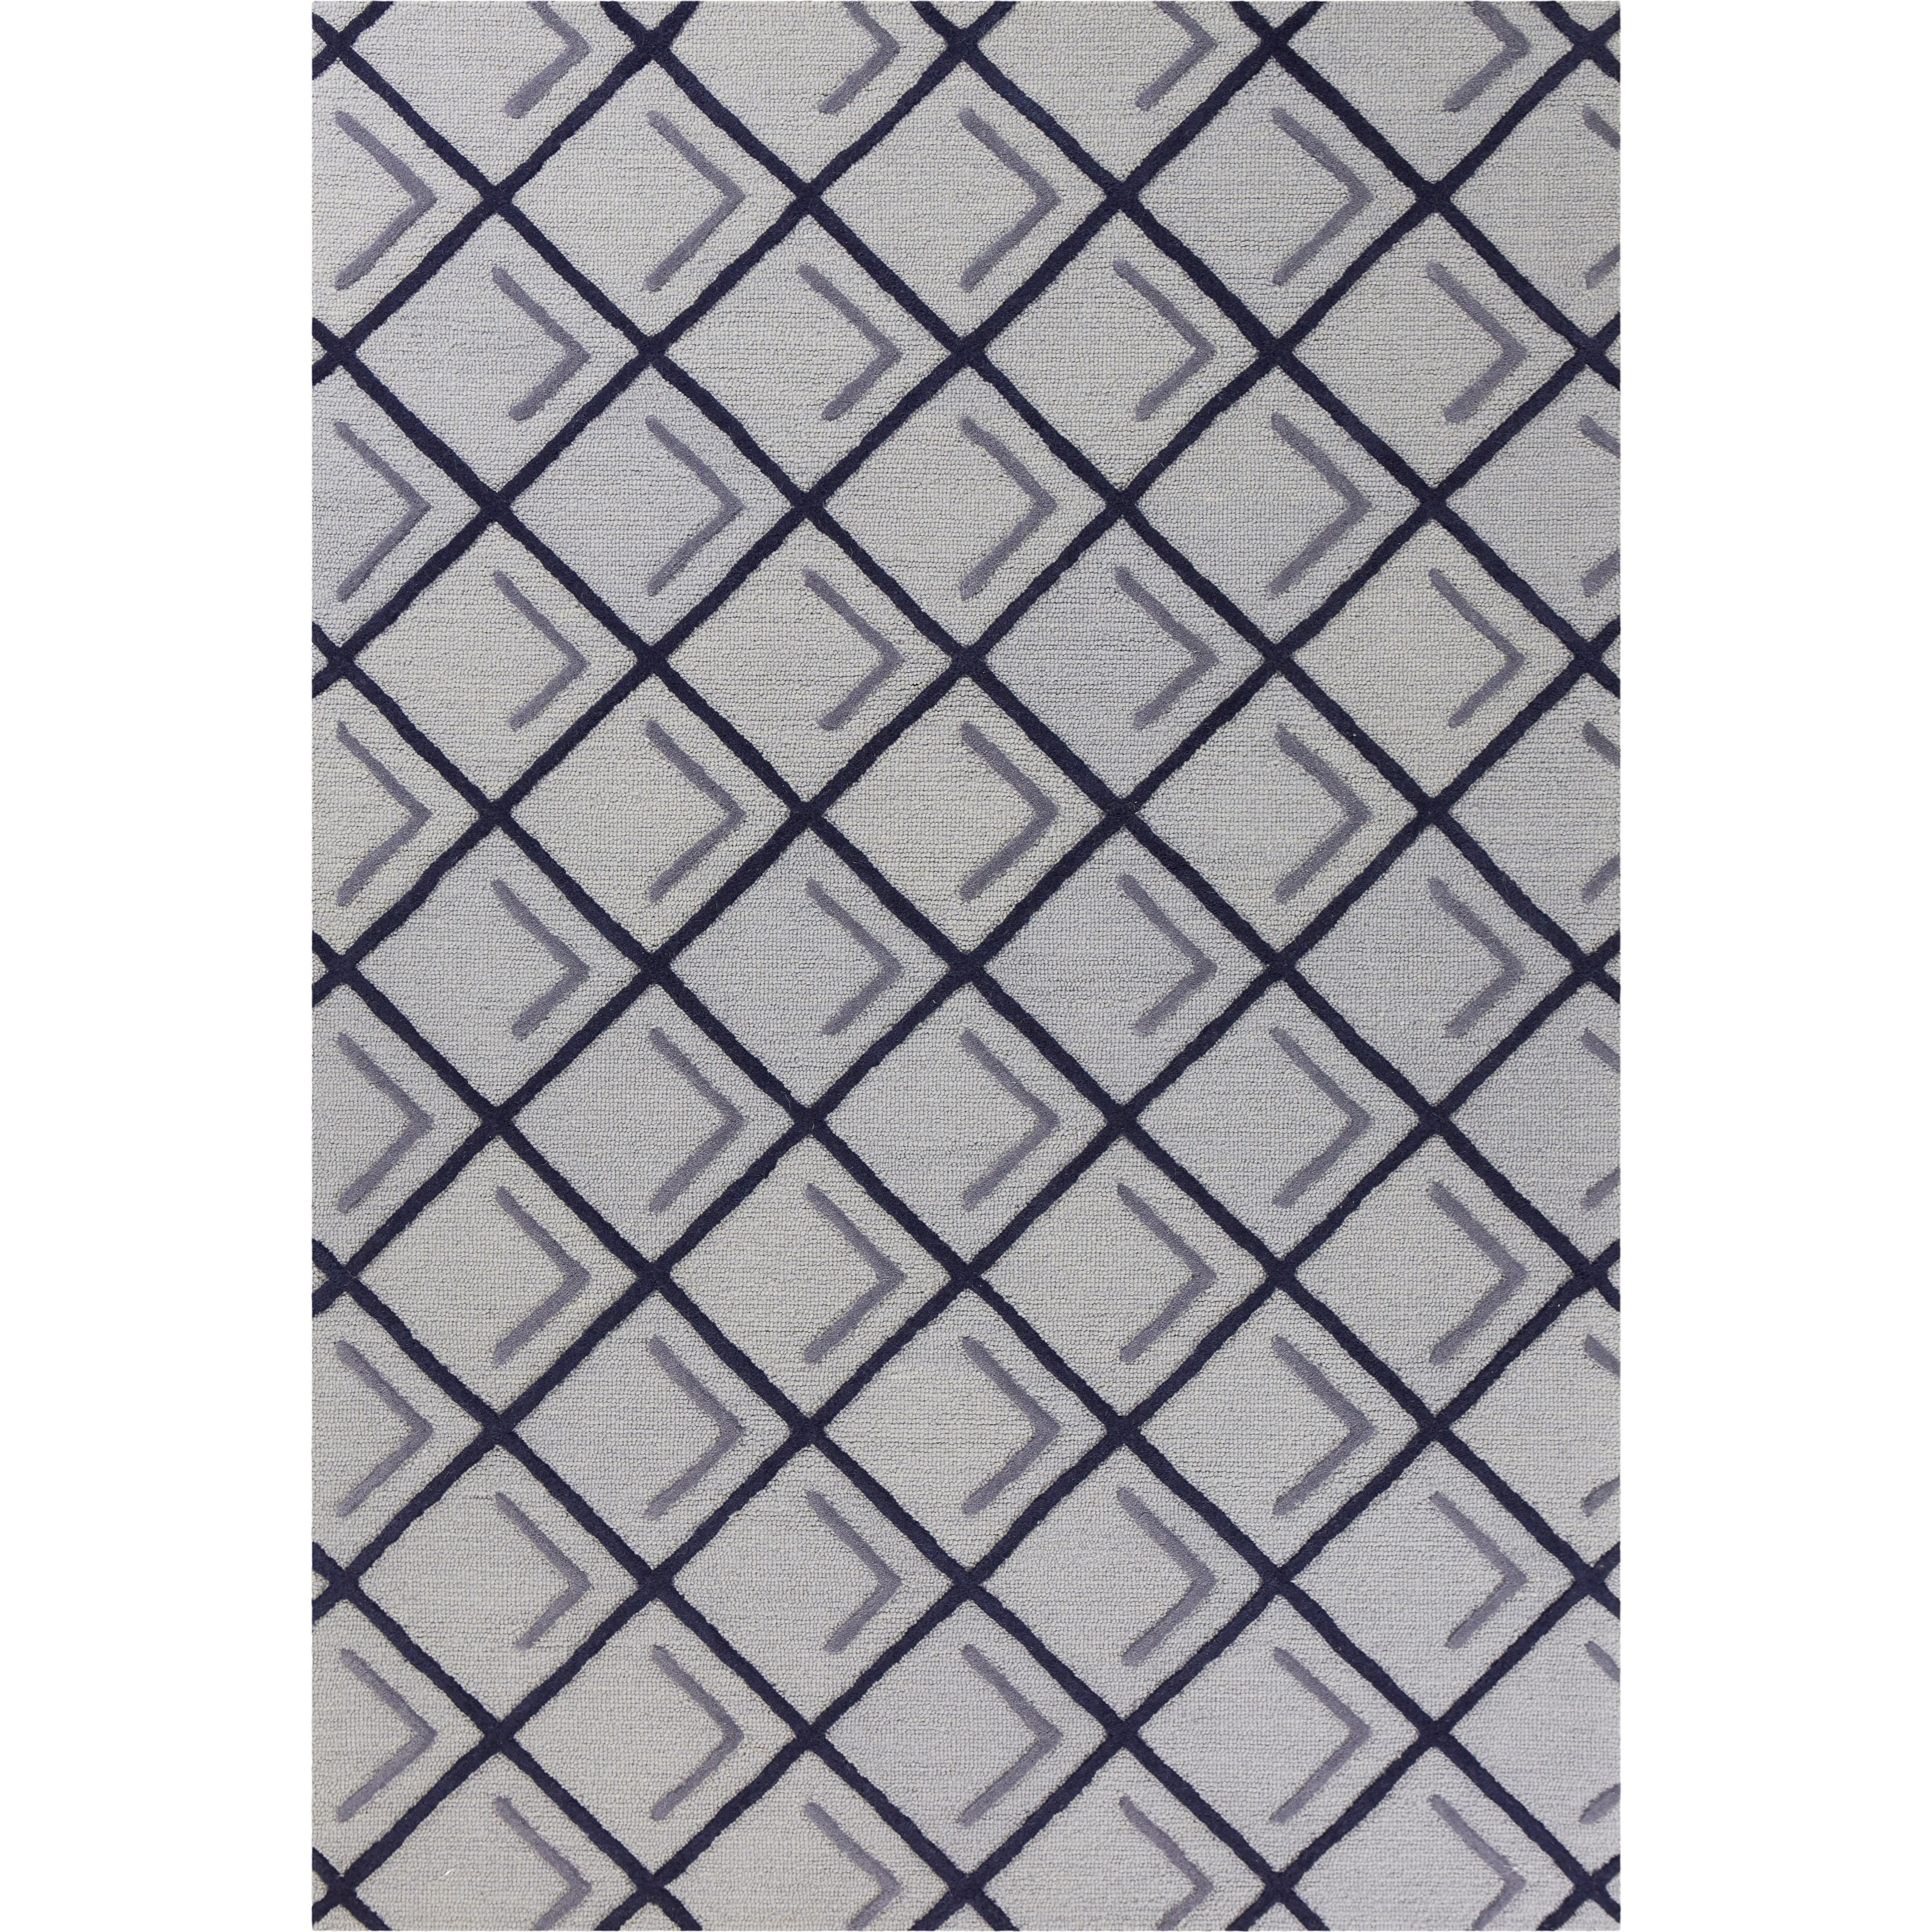 Libby Langdon Soho 7' X 5' Area Rug by Kas at Wilson's Furniture